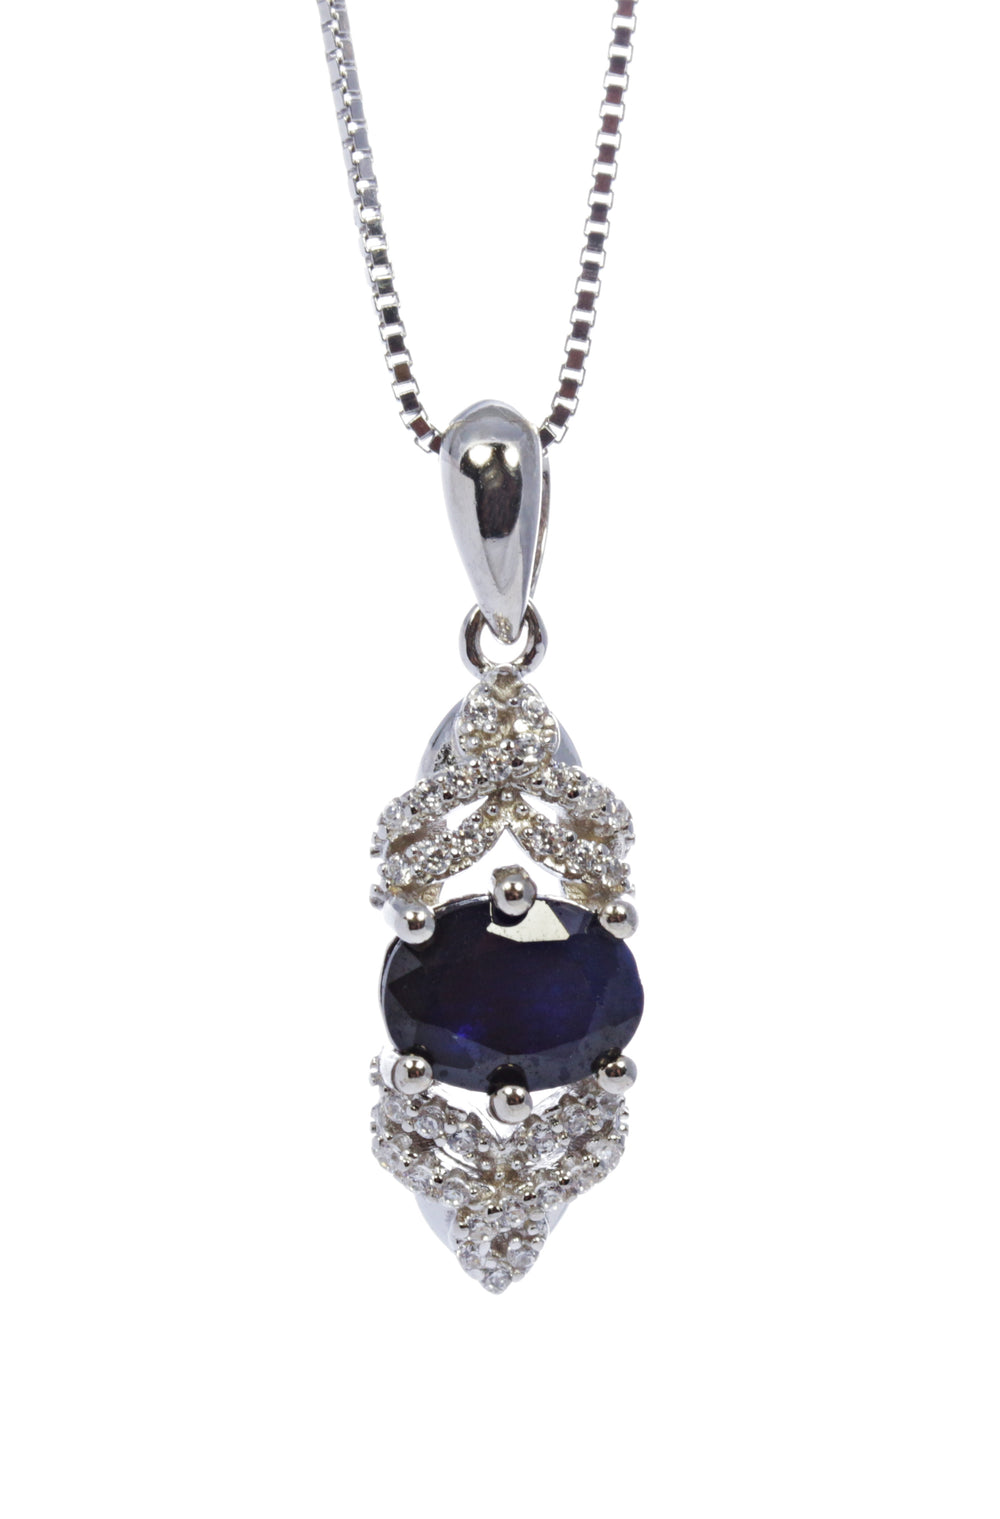 Oval Sapphire Pendant with CZ Accents in Sterling Silver